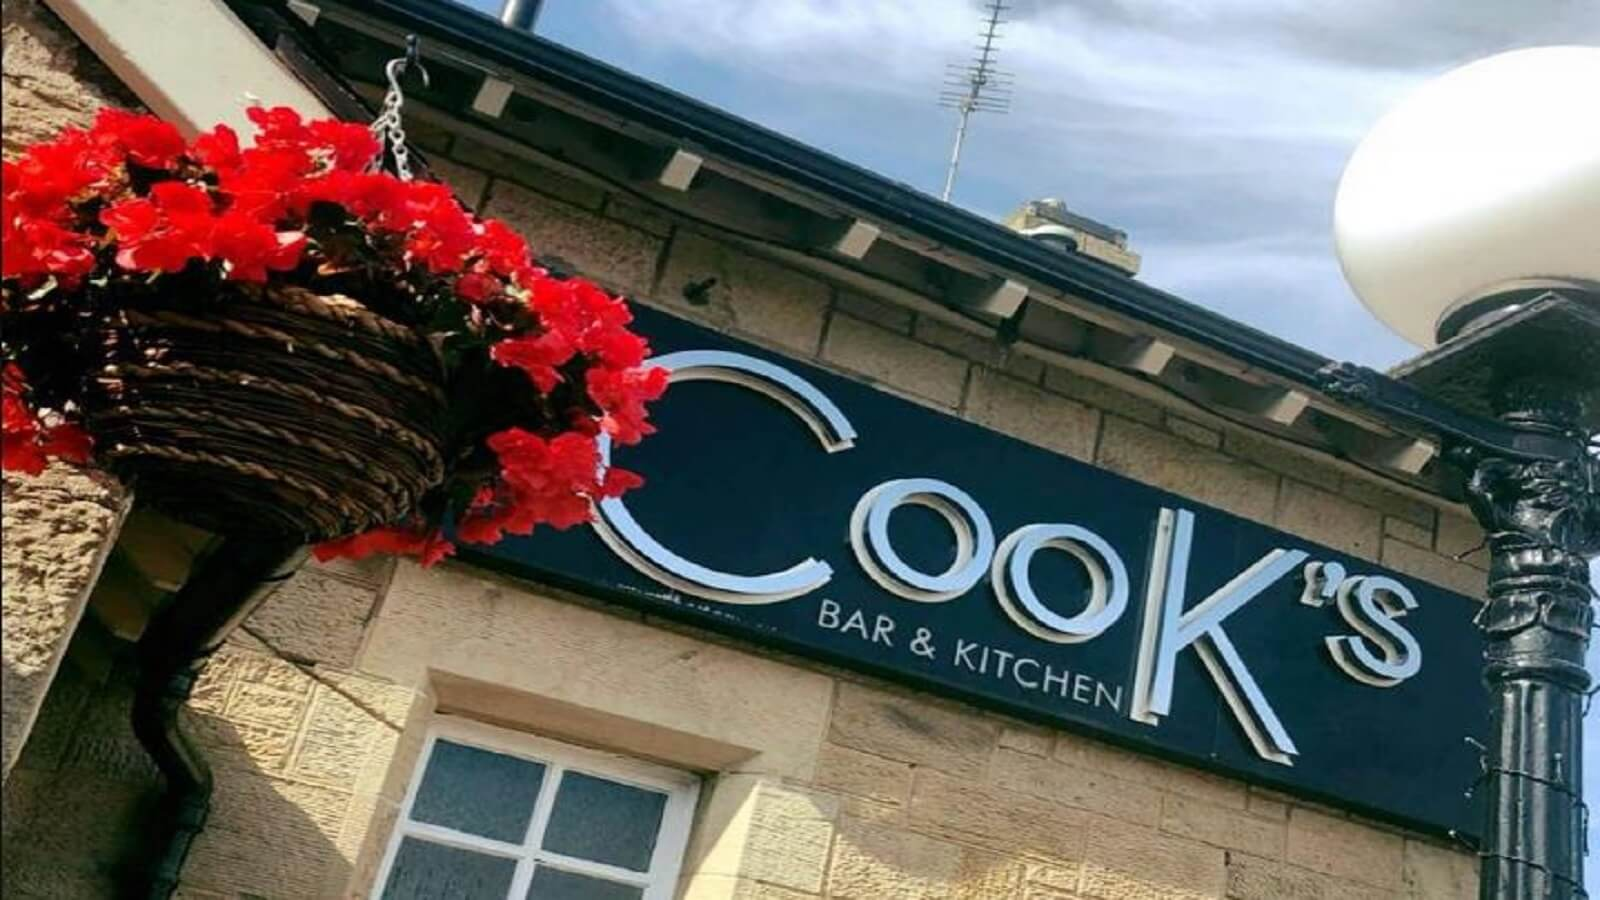 Cooks Bar and Kitchen